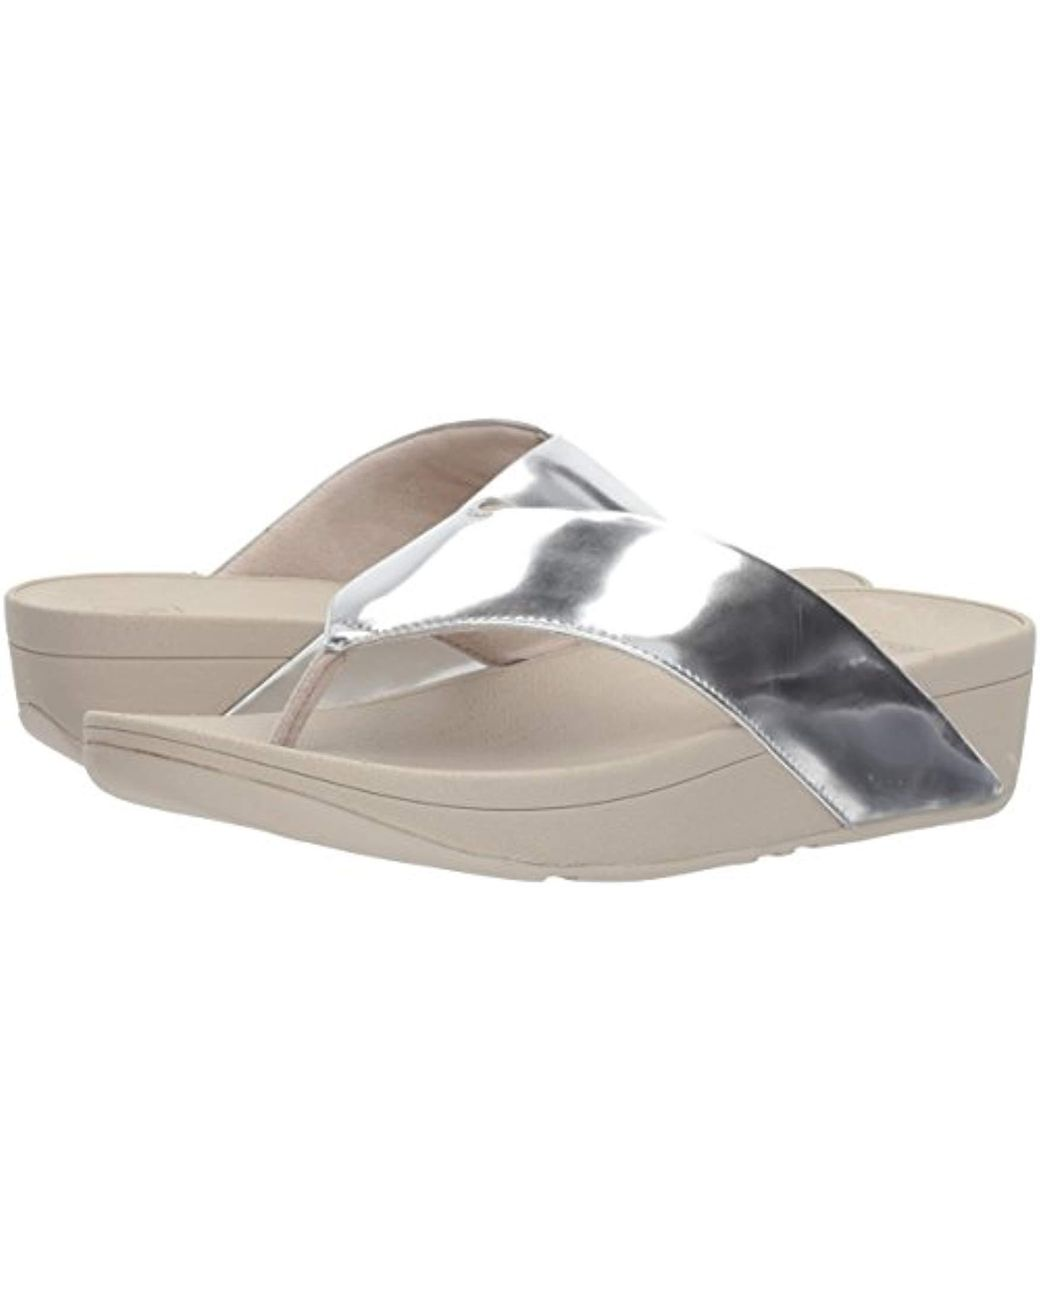 c7c9dadfe1d4 Lyst - Fitflop Swoop Toe-thong Sandals in Metallic